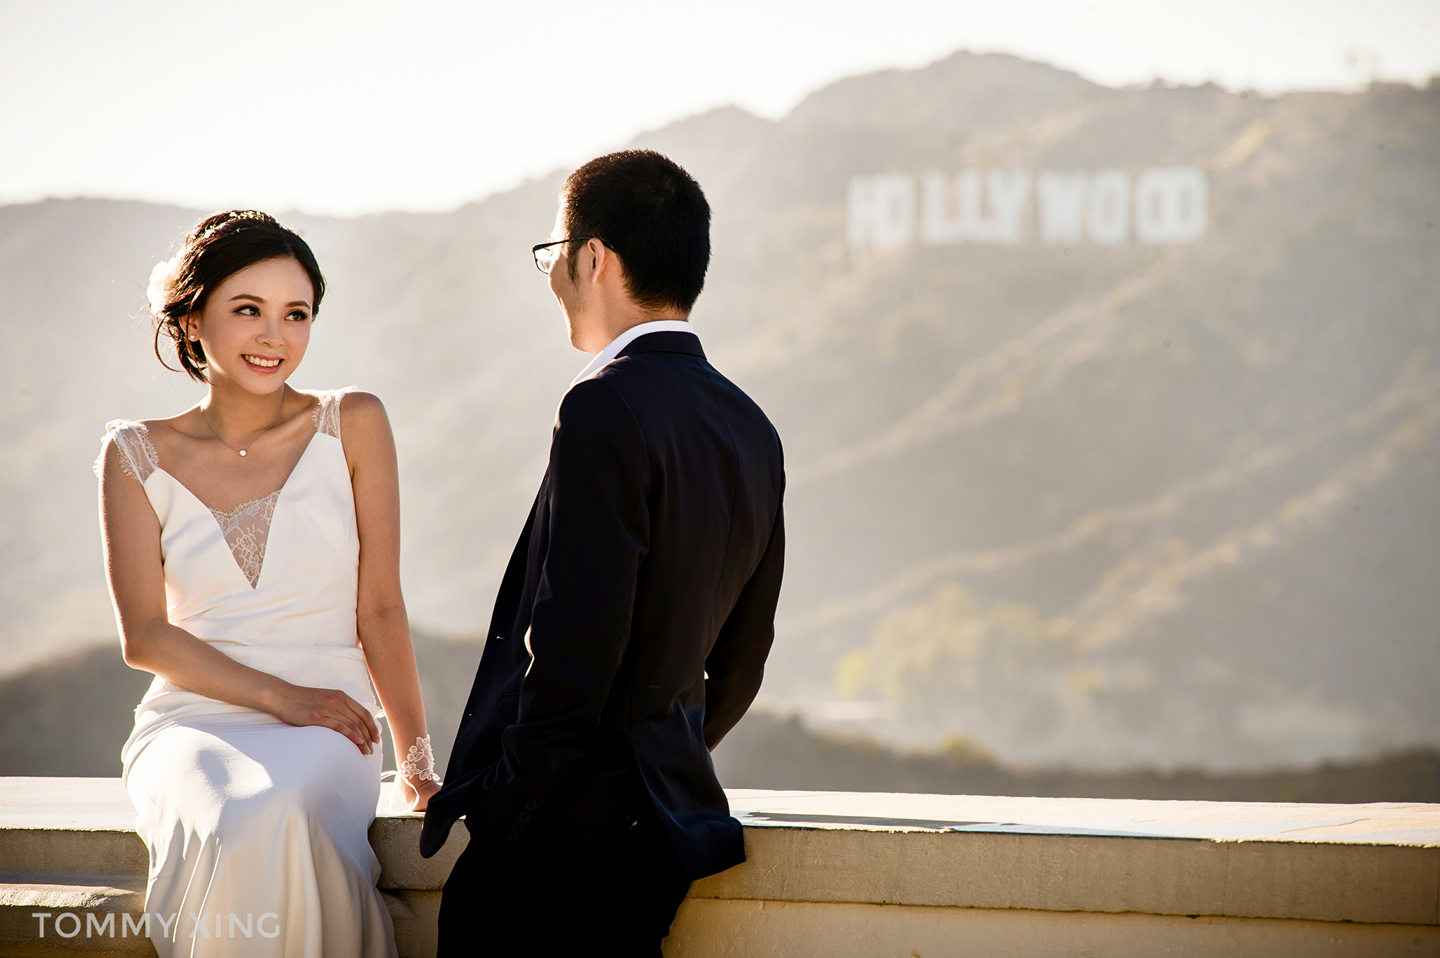 Los Angeles per-wedding 洛杉矶婚纱照 by Tommy Xing Photography 14.jpg